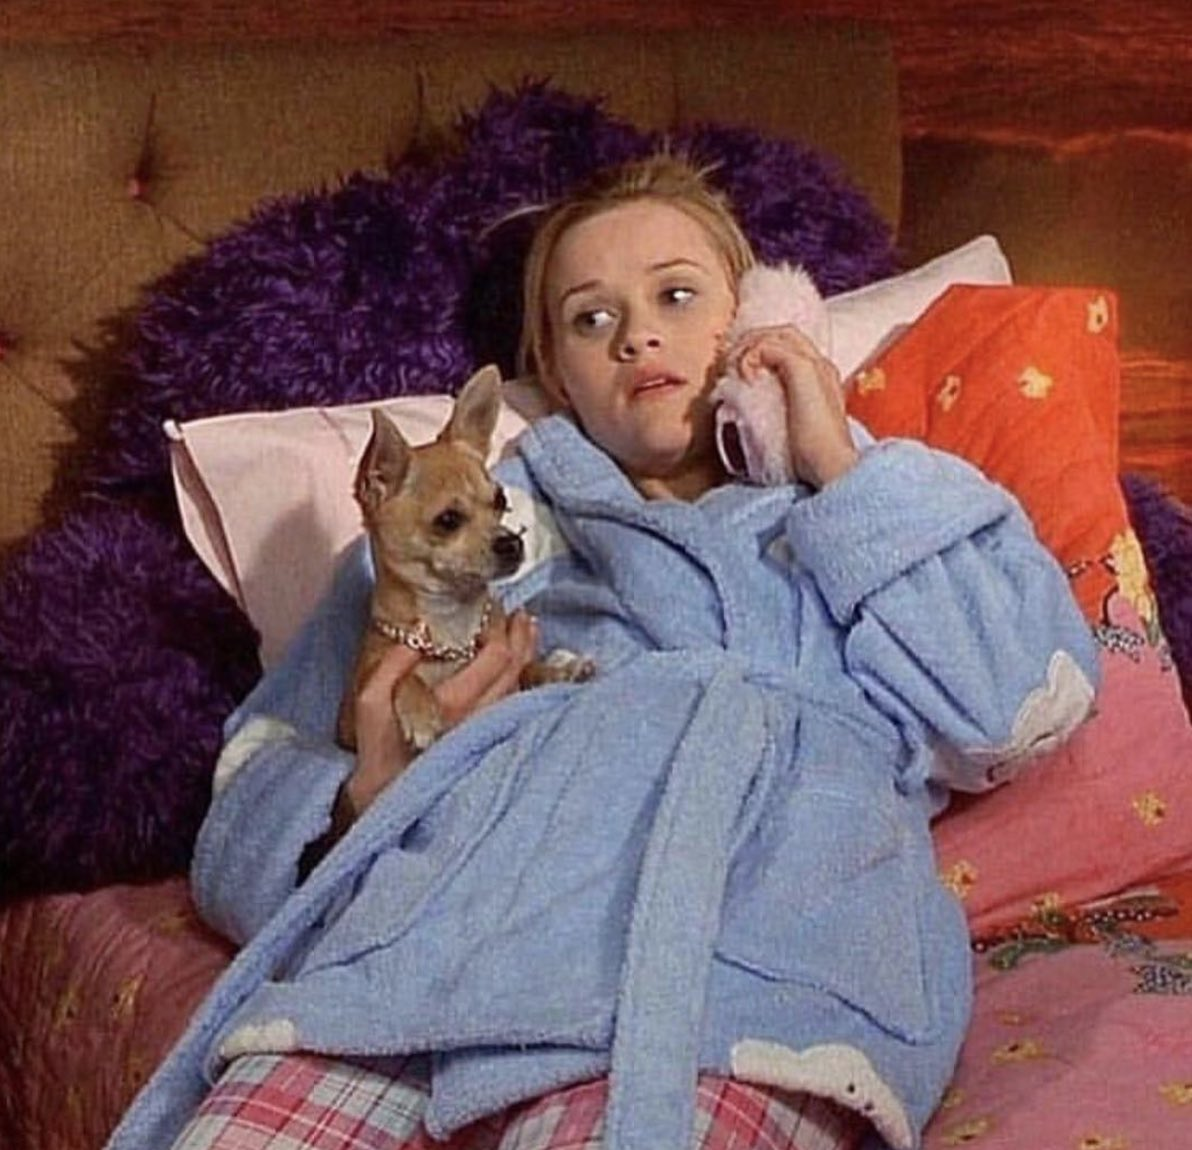 """Sorry I can't, I'm busy"" - me when someone tries to make plans this weekend #flashbackfriday #legallyblonde https://t.co/nYfKT8j8Cu"